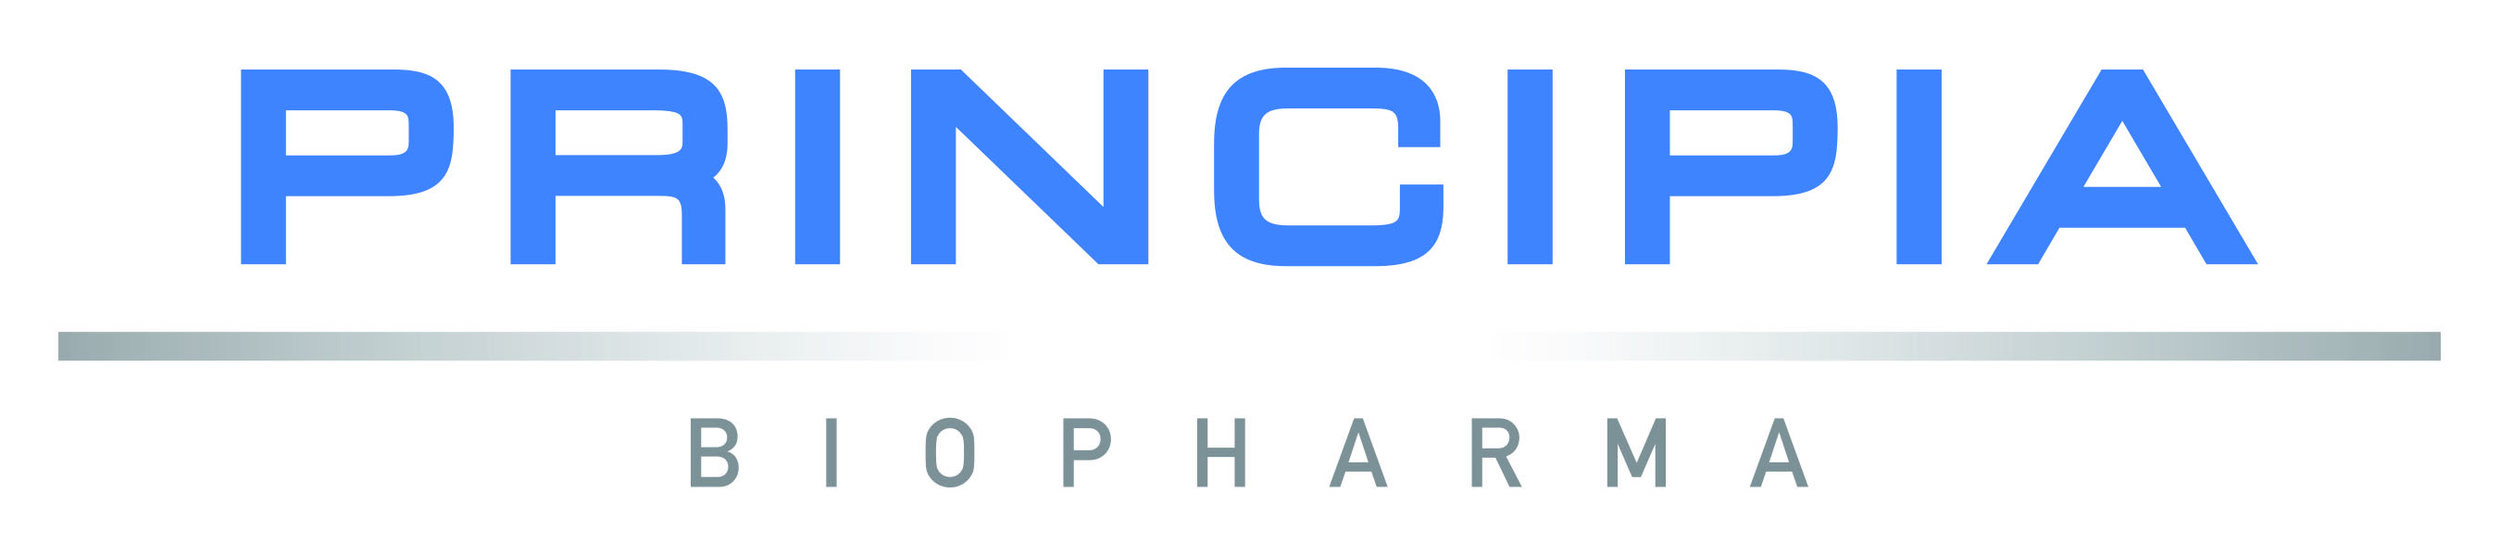 Principia New Logo high res.jpg